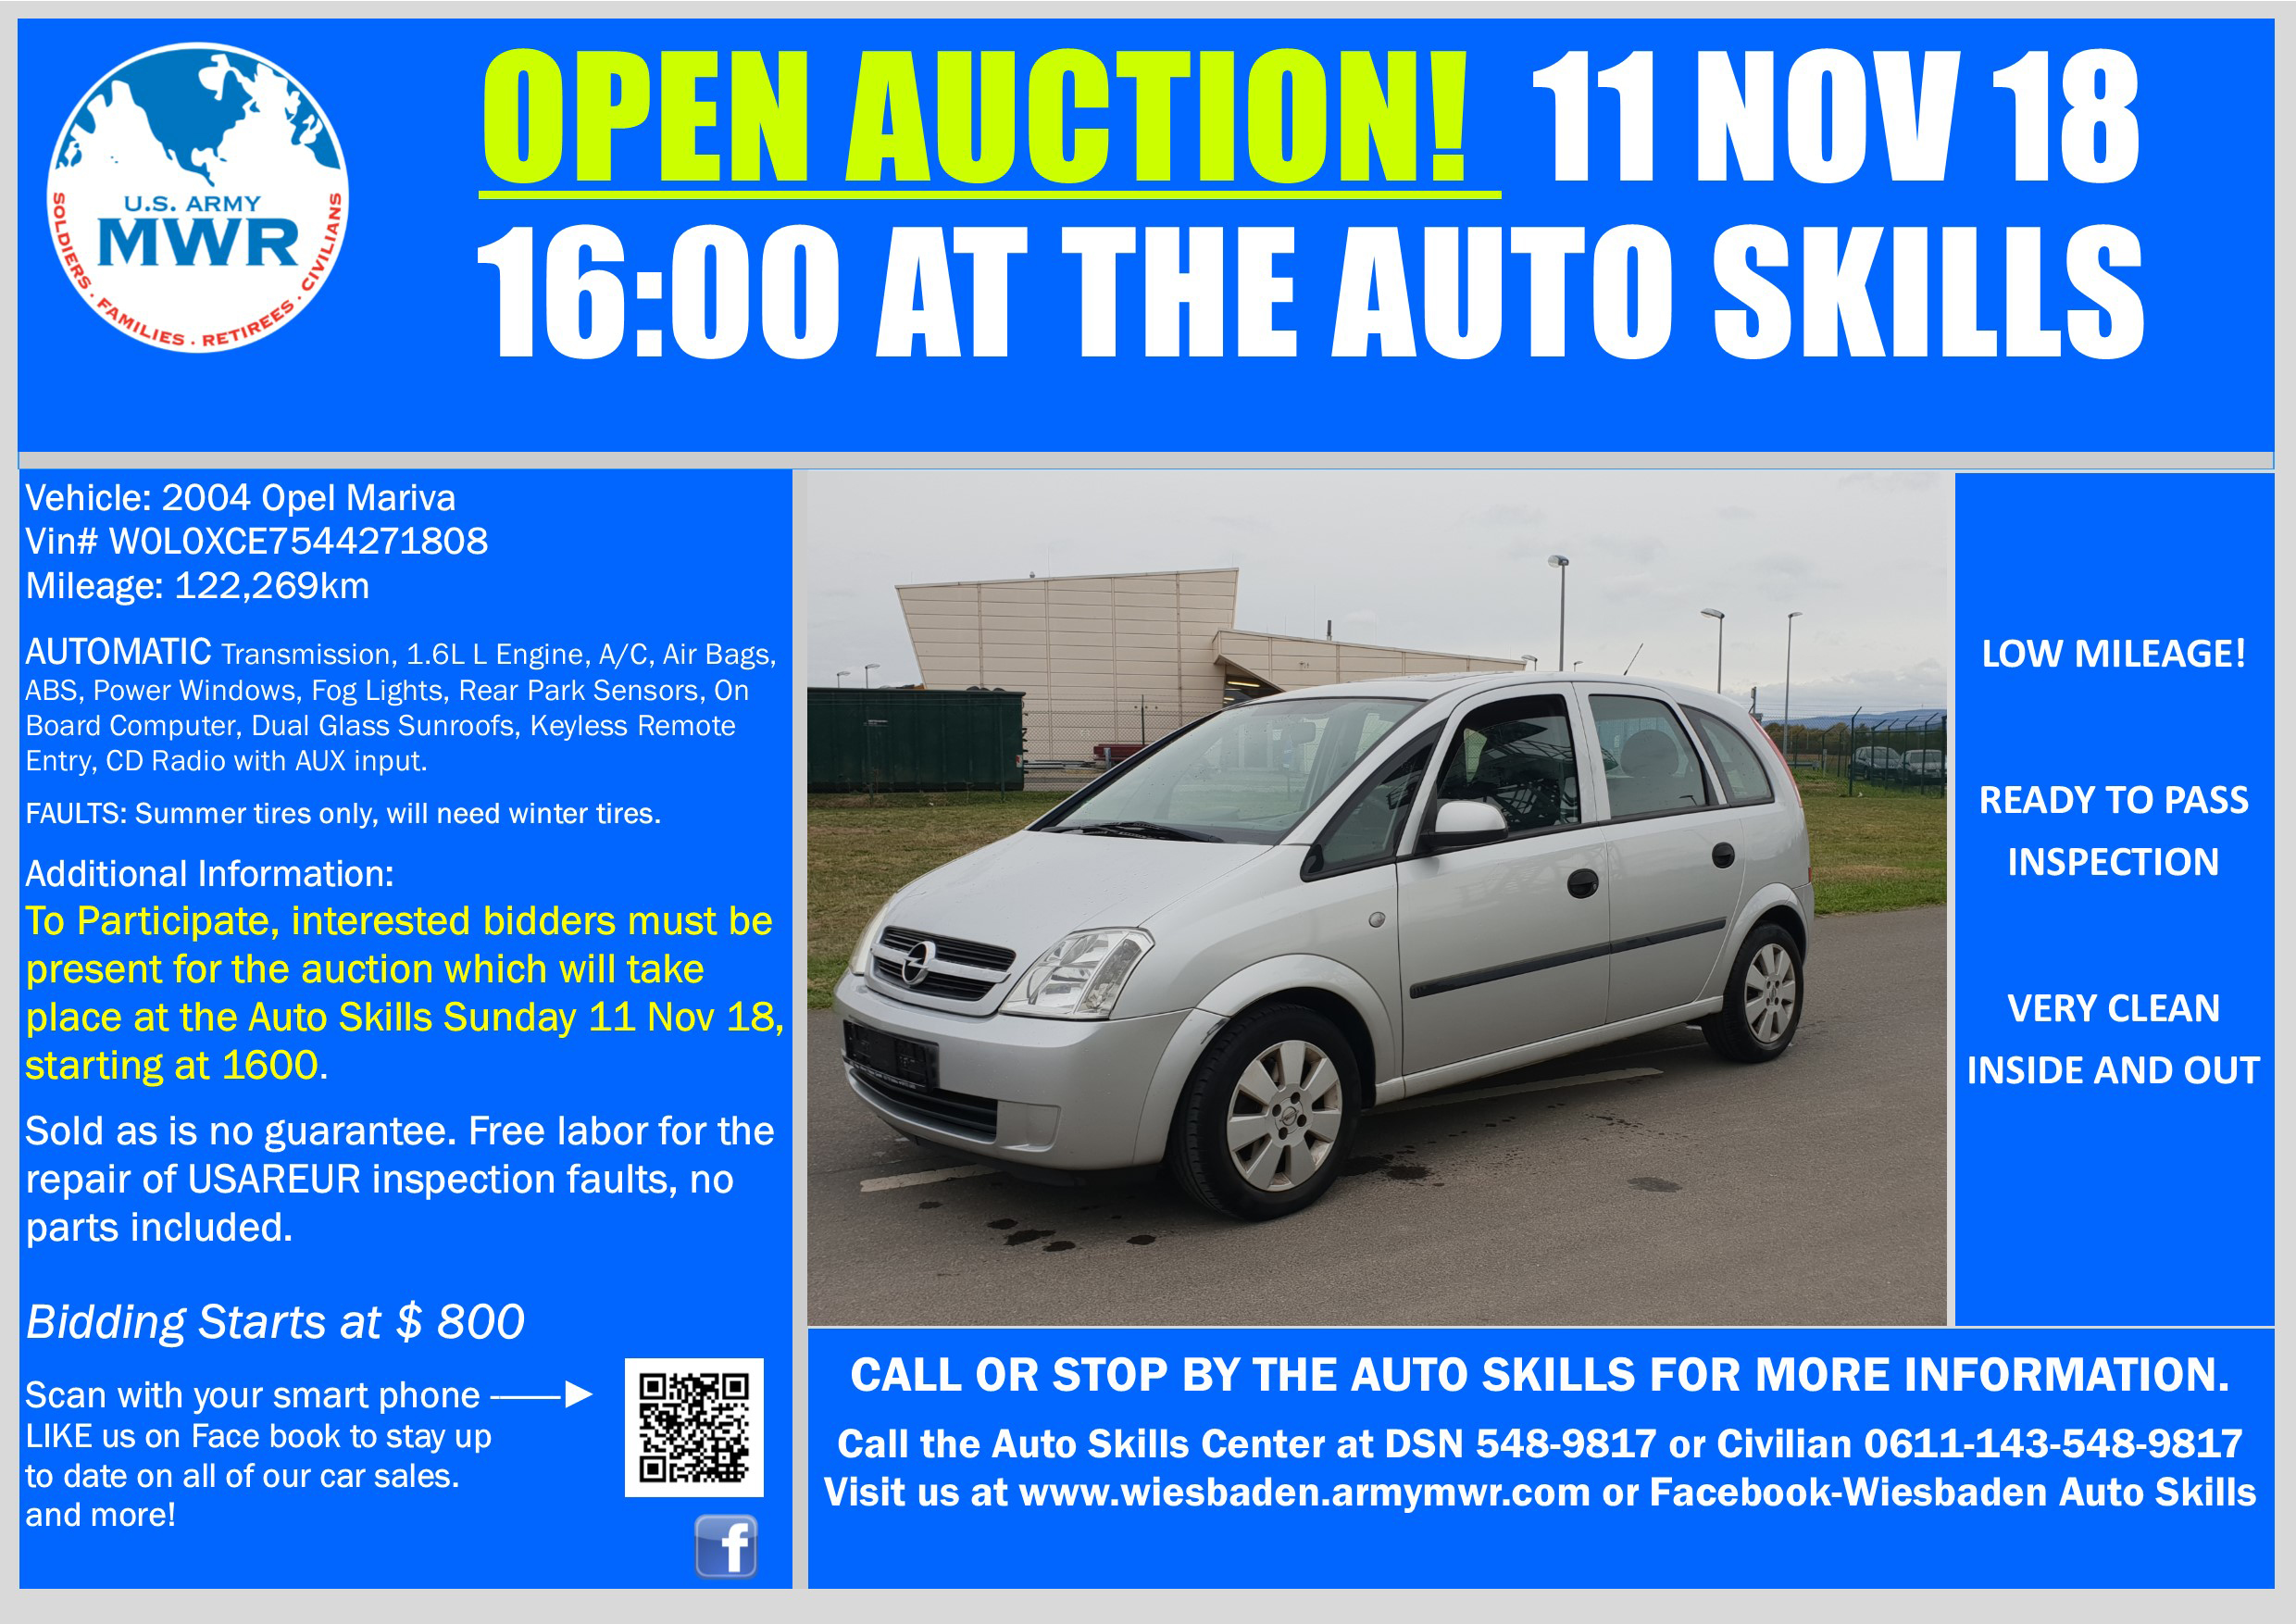 Sale Opel Meriva 11 Nov 18 Open Auction.jpg